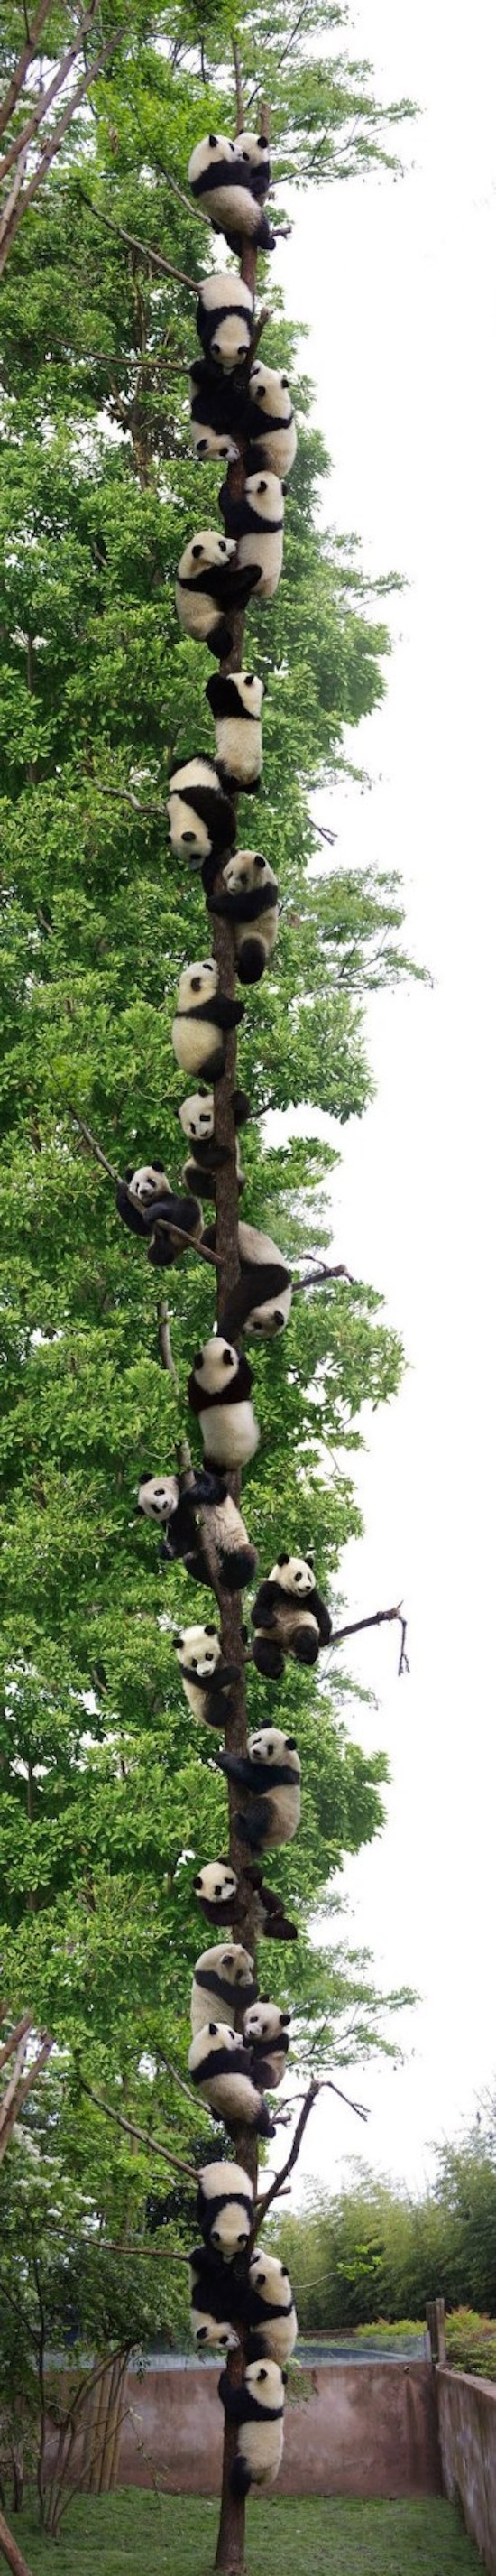 neverending pandas in a tree, best funny pictures, funny pics, funny photos, funny pictures, funny vids, the best funny pictures, really funny photos, funny photos of animals, funny photos 2016, funny photos 2017, funny photos 2018, funny photos 2019, funny pics 2016, funny pics 2017, funny pics 2018, funny pics 2019, funny pictures 2016, funny pictures 2017, funny pictures 2018, funny pictures 2019, funniest pics 2016, funniest pics 2017, funniest pics 2018, funniest pics 2019, funniest pictures 2016, funniest pictures 2017, funniest pictures 2018, funniest pictures 2019, funniest photos 2016, funniest photos 2017, funniest photos 2018, funniest photos 2019, where to find funny pictures, funny pictures which made everyone laugh, where funny pictures, where to download funny pictures, where to find funny pictures with captions, where to get funny pictures for instagram, where to find funny pictures to share, where to find funny pictures to share on facebook, where to see funny pictures, funny pictures for instagram, funny pictures for facebook, funny pictures for memes, funny pictures for wallpaper, funny pictures for him, funny pictures for her, funny pictures for friends, funny pictures for snapchat, funny pictures like uberhumor, funny pictures like 9gag, funny pictures like facebook, funny pictures like, funny pictures like ifunny, funny stuff like pictures, funny pictures to text, funny pictures to photoshop, funny pictures to send, funny pictures to caption, funny pictures to post, funny pictures to make someone feel better, funny pictures to put on facebook, funny pictures to make you laugh, funny pictures to make you smile, funny pictures to brighten your day, funny pictures to brighten someone's day, funny pictures with words, funny pictures with no words, funny pictures without captions, funny pictures with jokes, funny pictures with dogs, funny pictures with cats, funny pictures without words, funny pictures without text, where can I find funny photos, best photos ever, best photo ever, silly photos, silly pictures, silly pics,